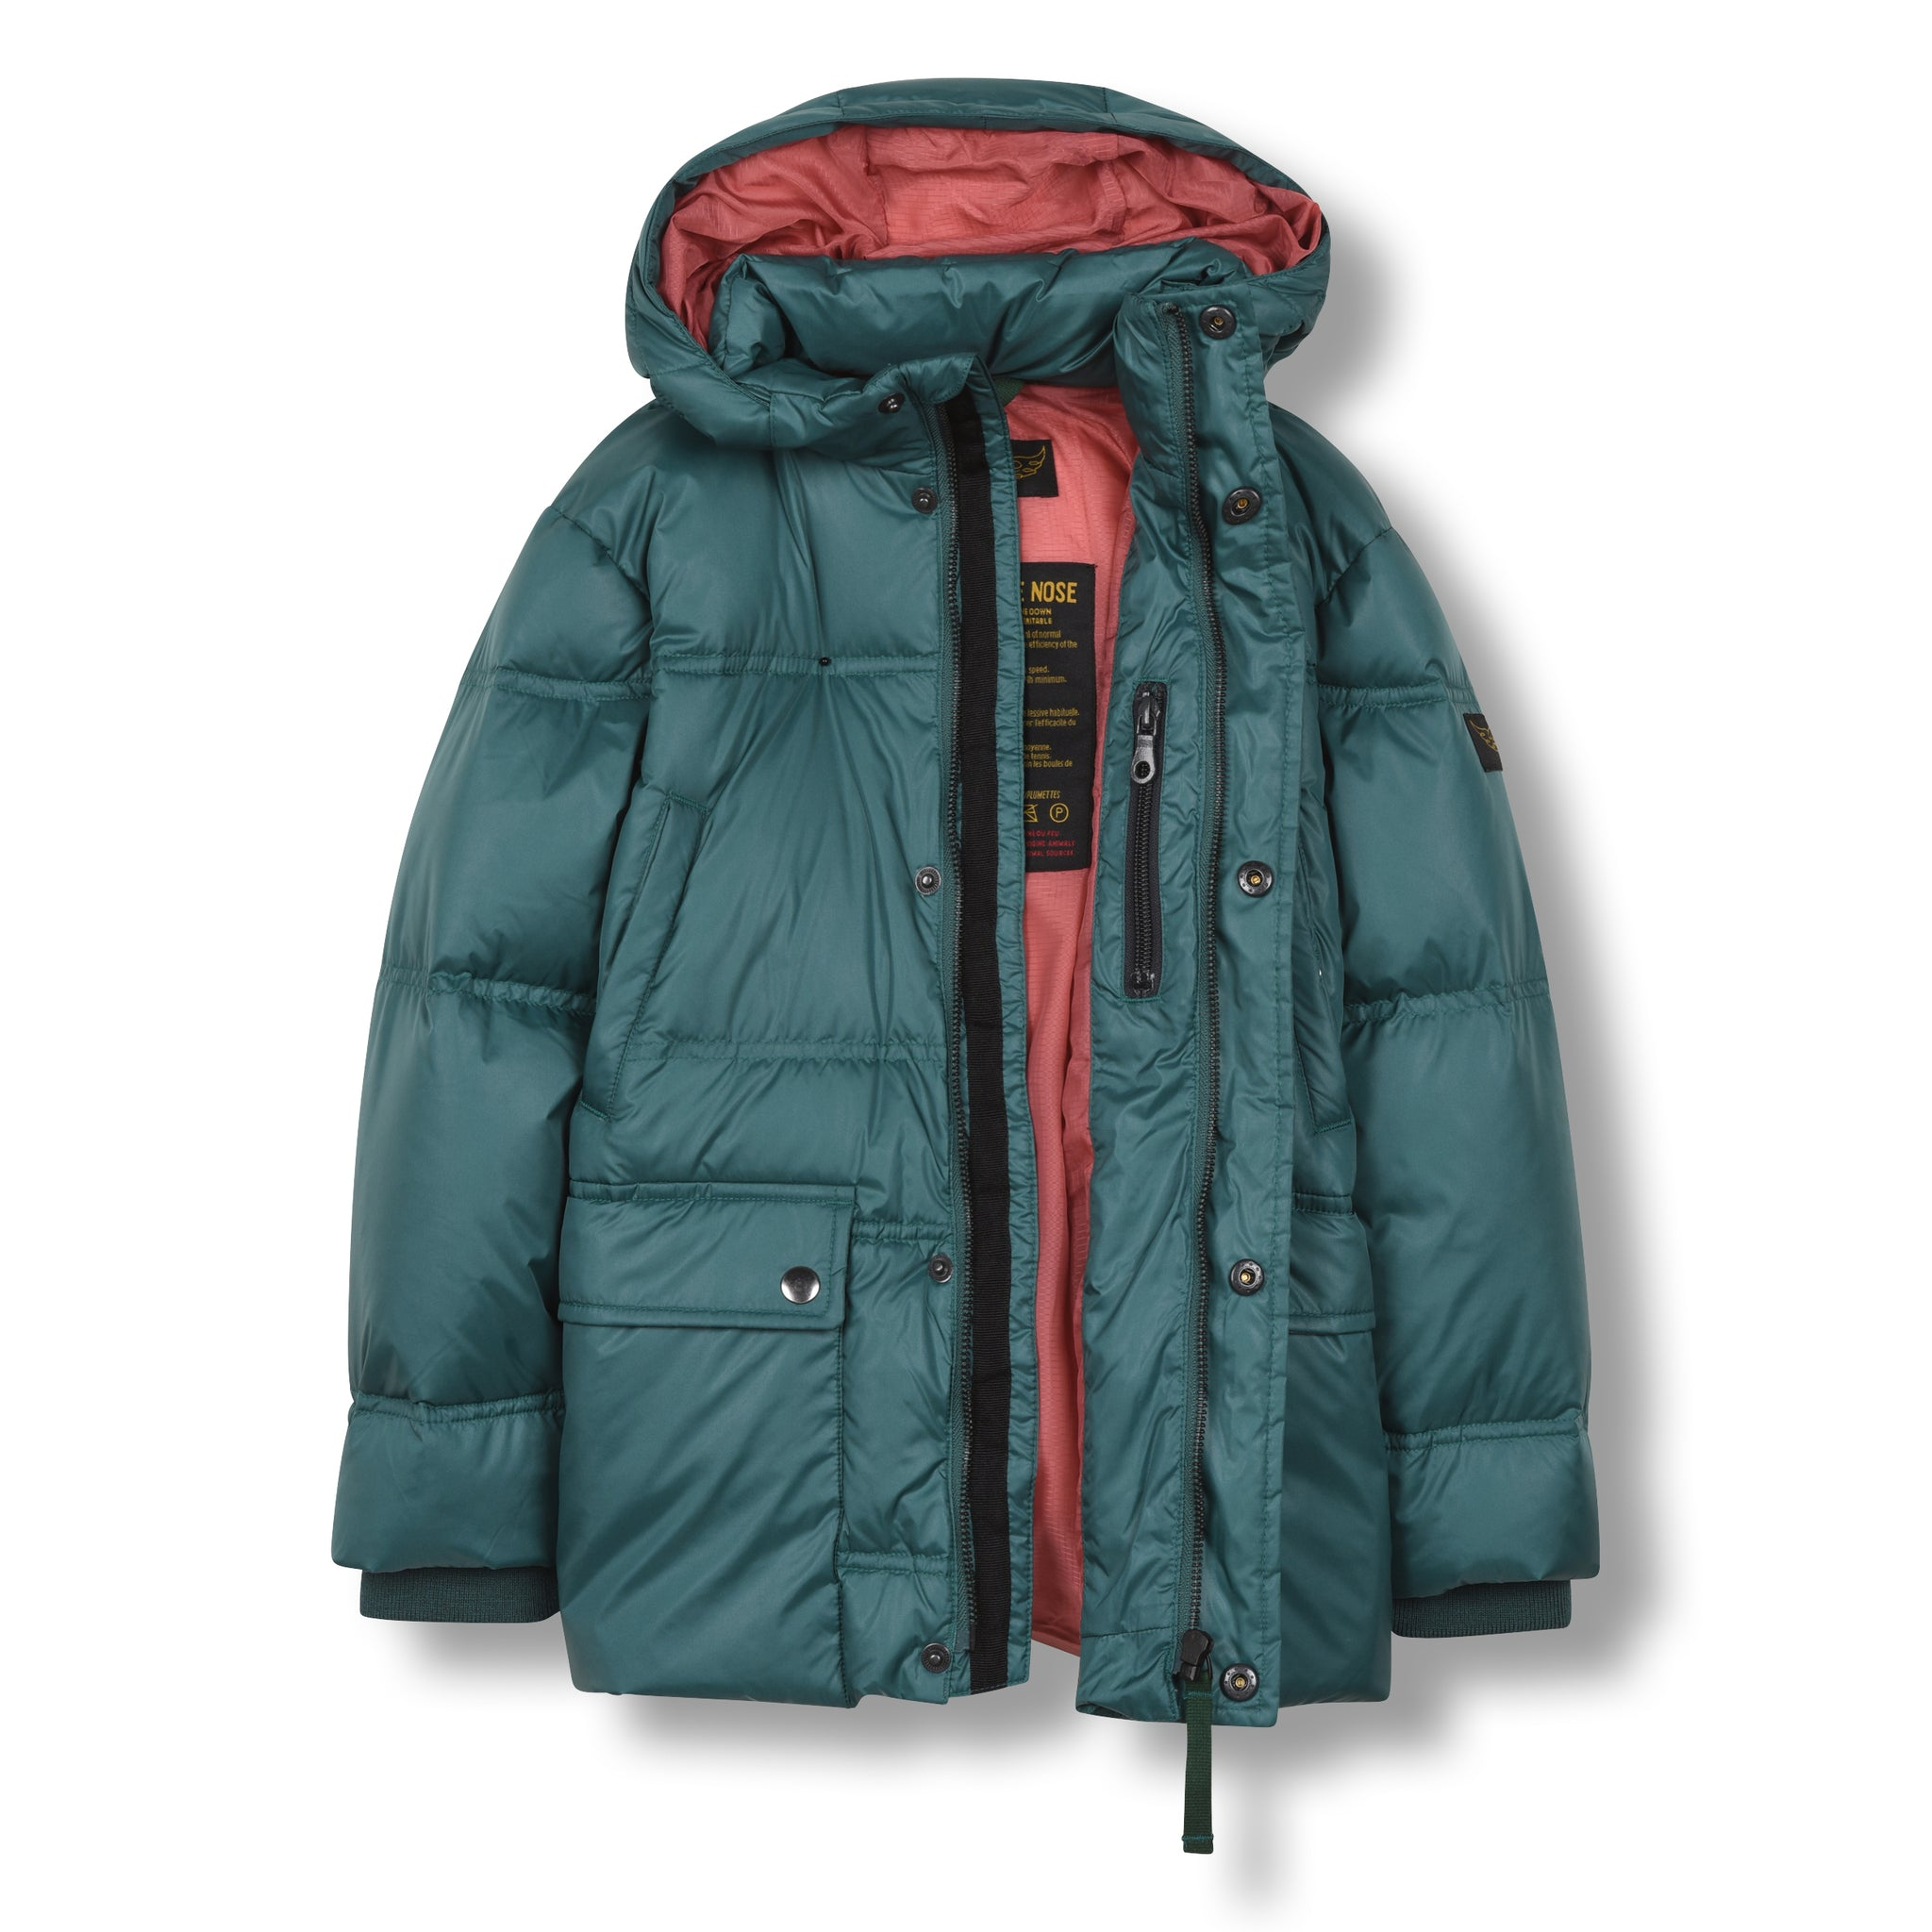 SNOWCAMP University Green - Zipped Down Parka 2